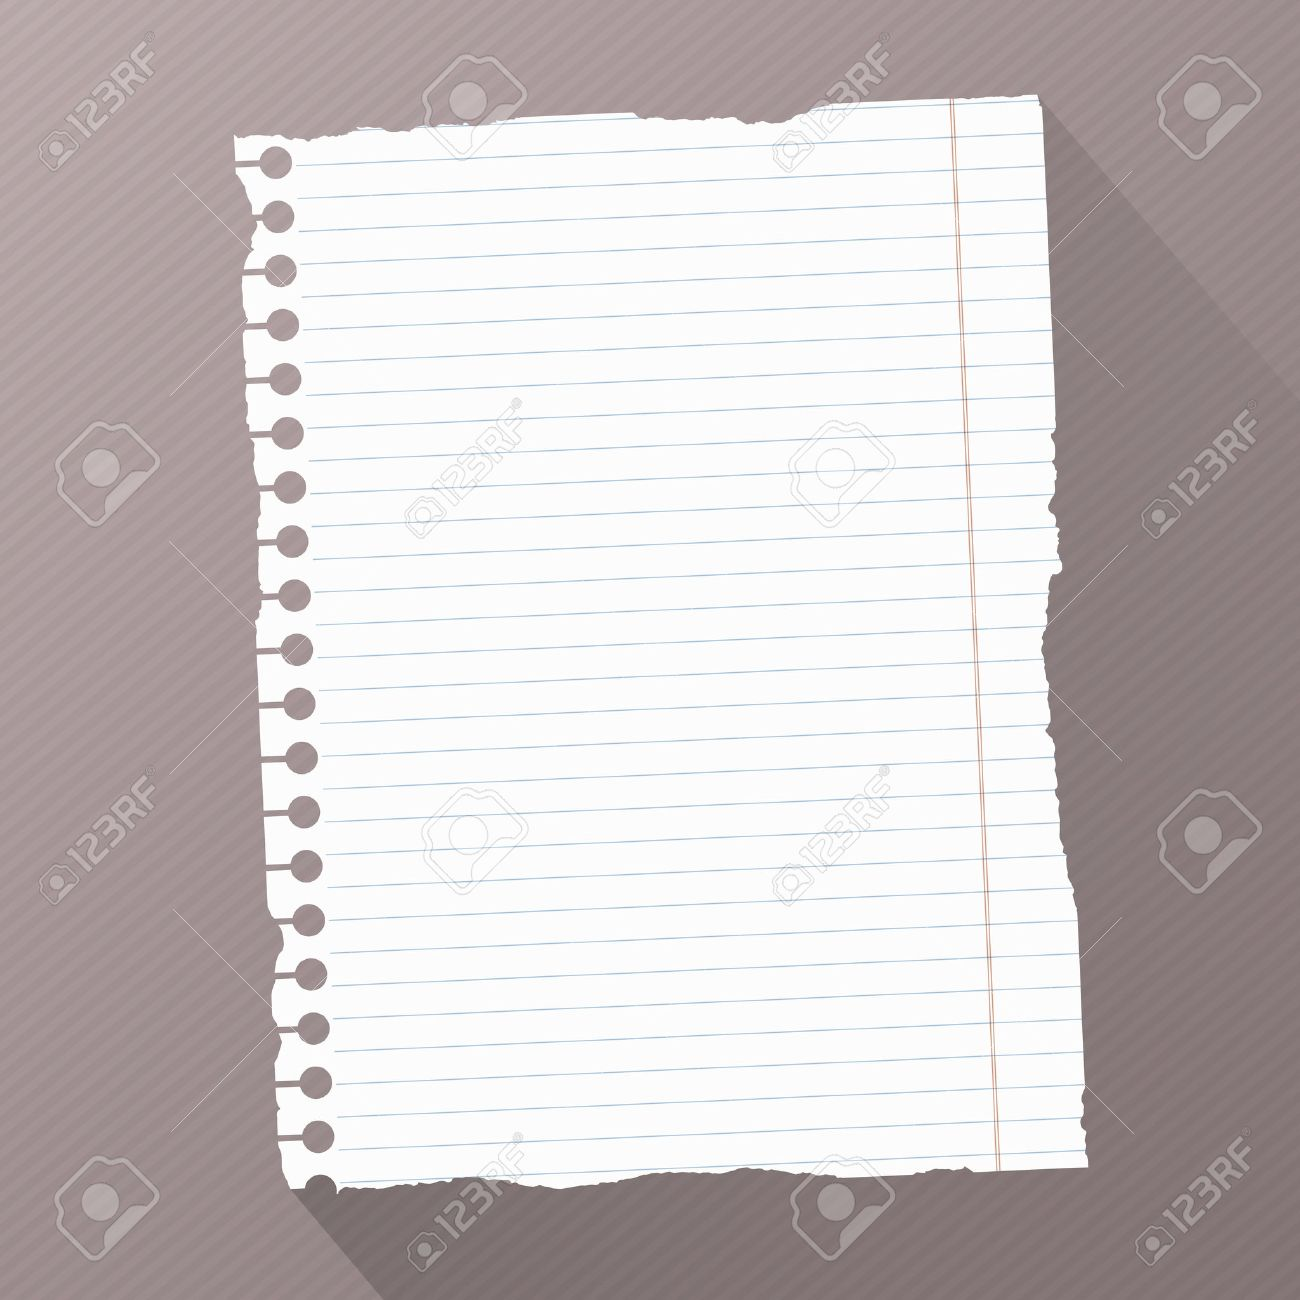 Piece Of Torn White Blank Lined Notebook Paper On Dark Striped – Blank Line Paper